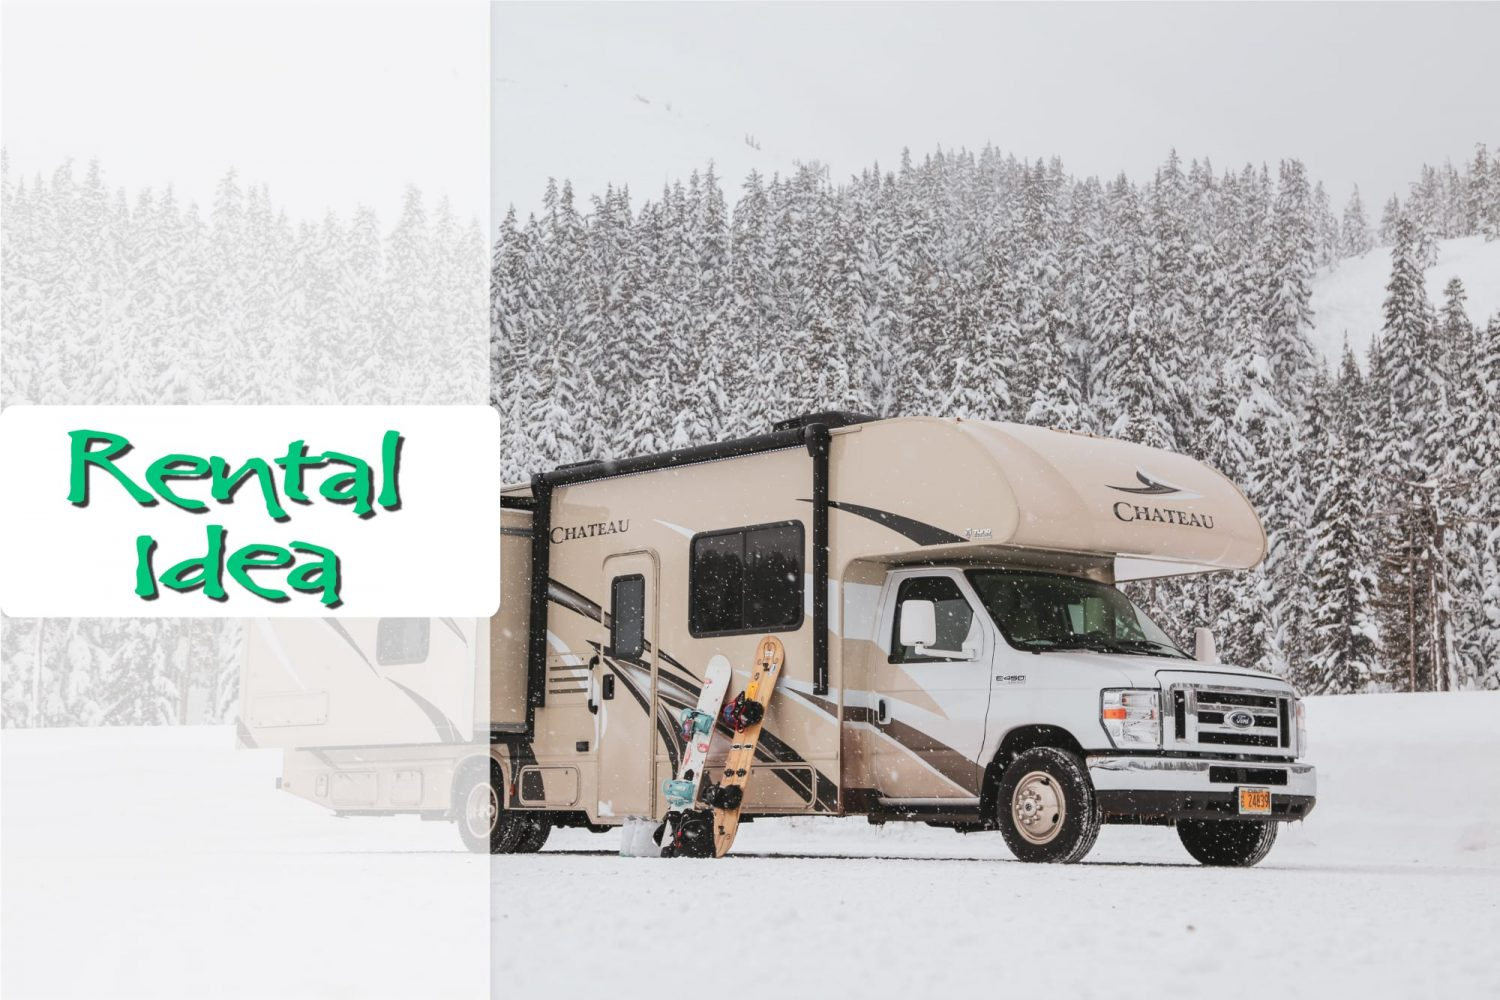 Take an RV Rental tot he Mountain for the best Apres Ski